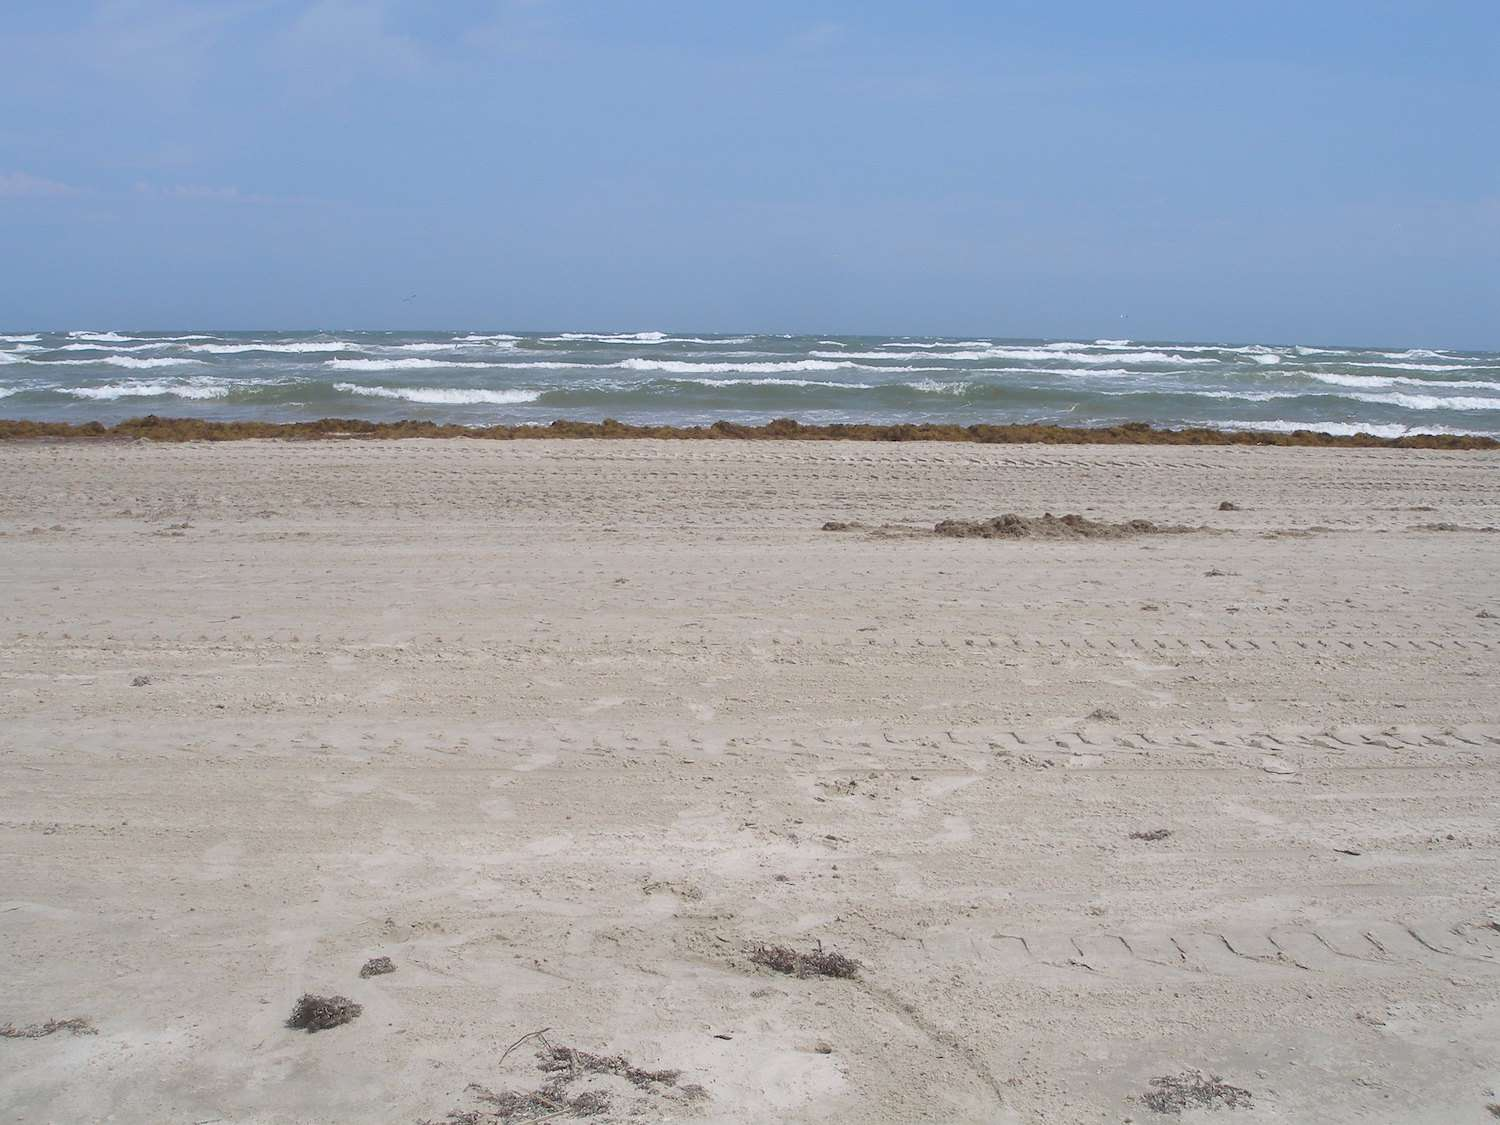 A head-on view of the sandy beach and choppy water at Padre Island National Seashore